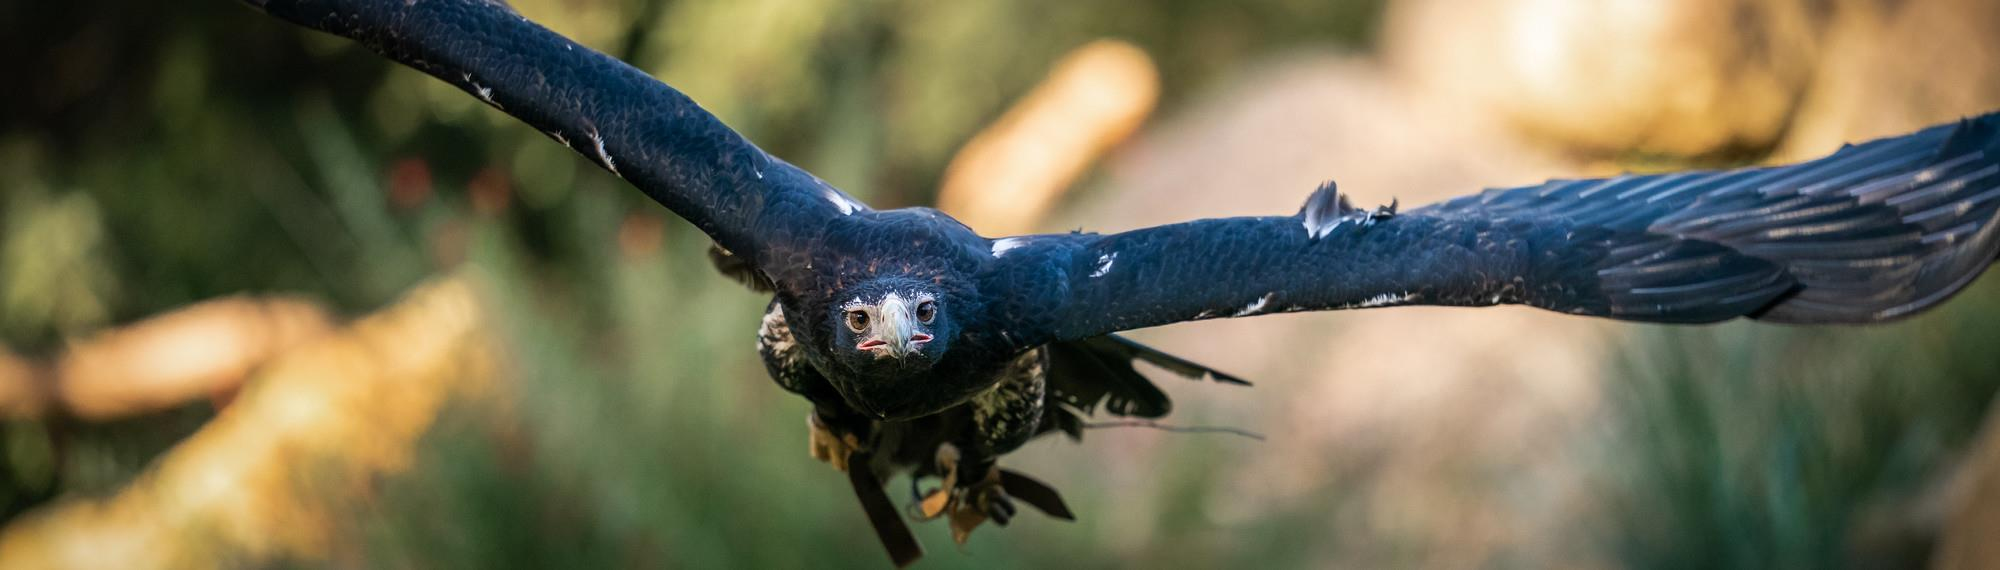 Wedge-tailed eagle flying directly towards camera with wings outstretched